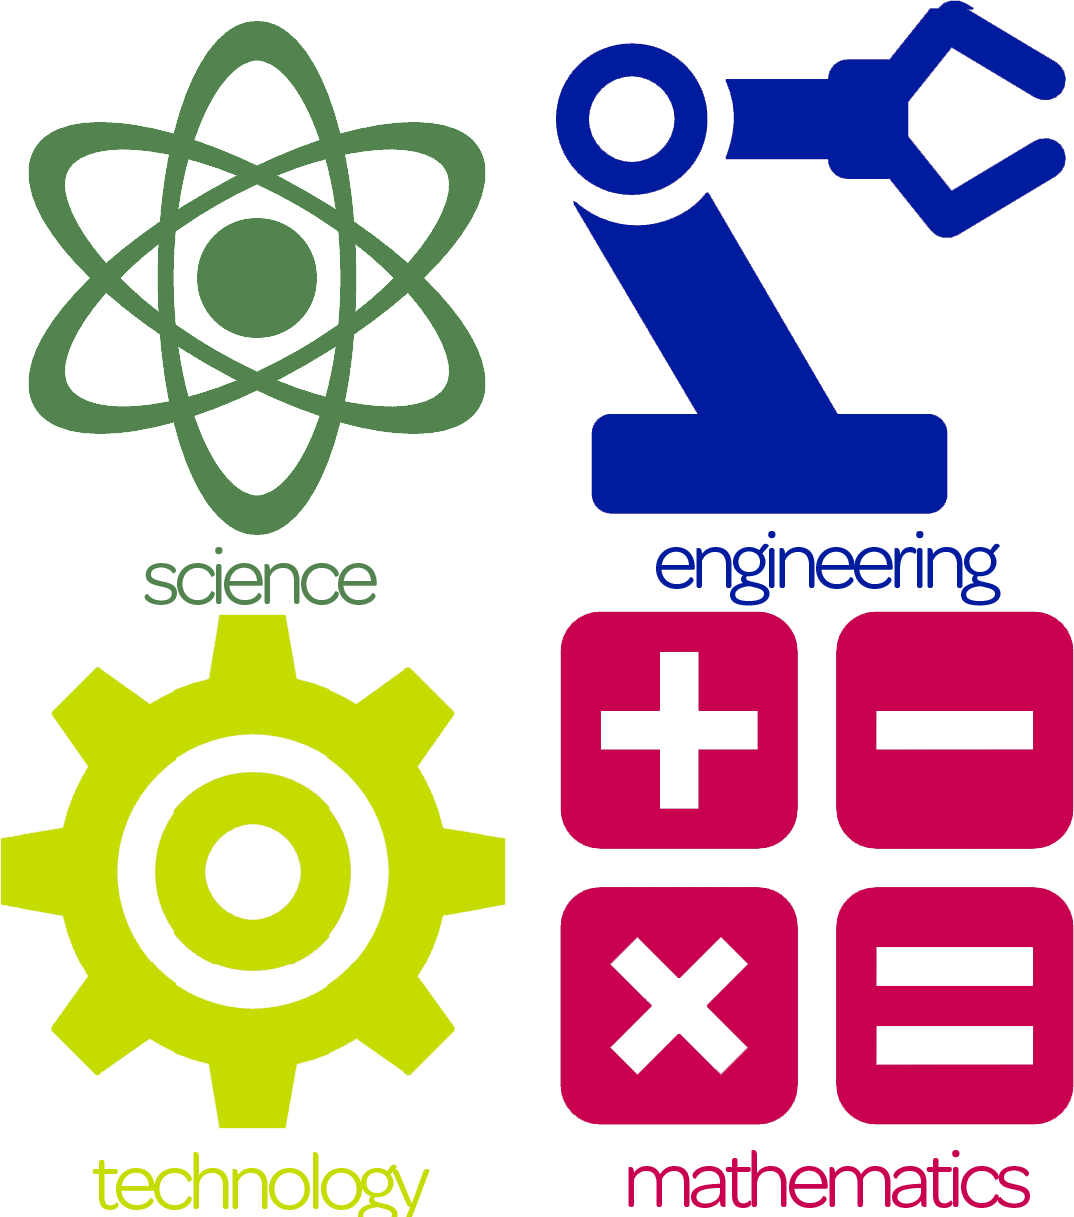 Free Stem Cliparts, Download Free Clip Art, Free Clip Art on.